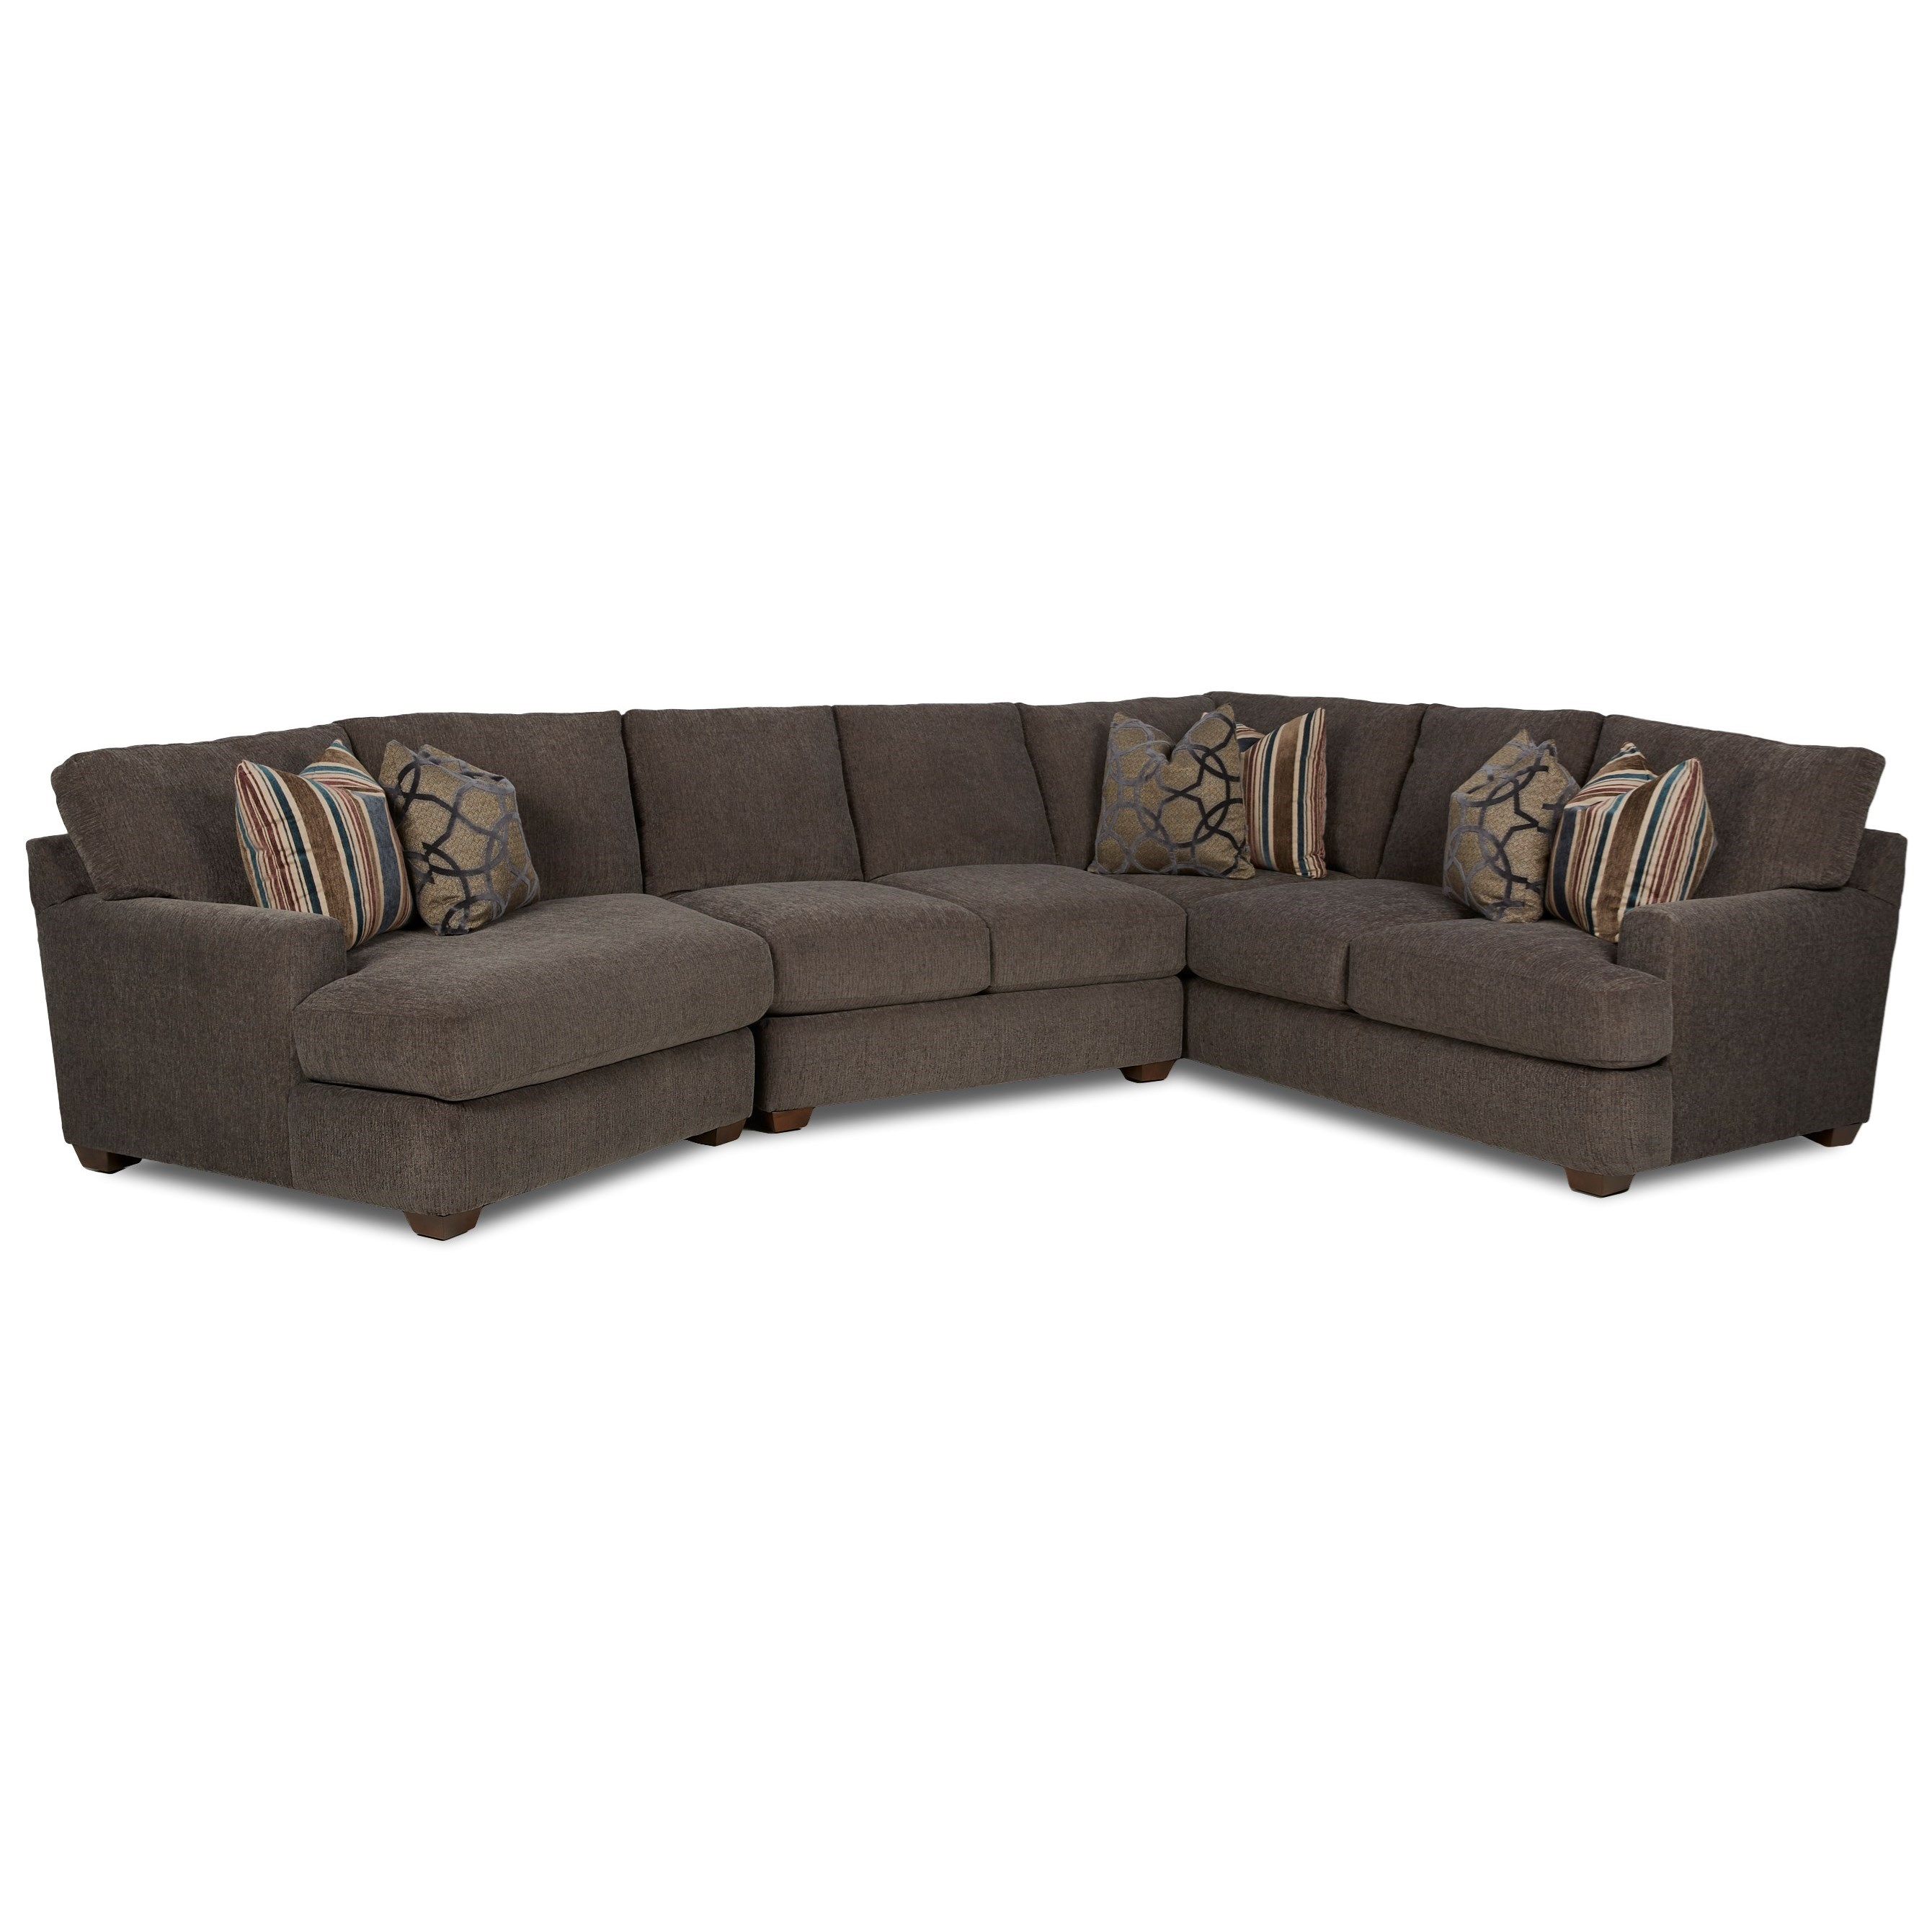 Three Piece Sectional Sofa with LAF Cuddler